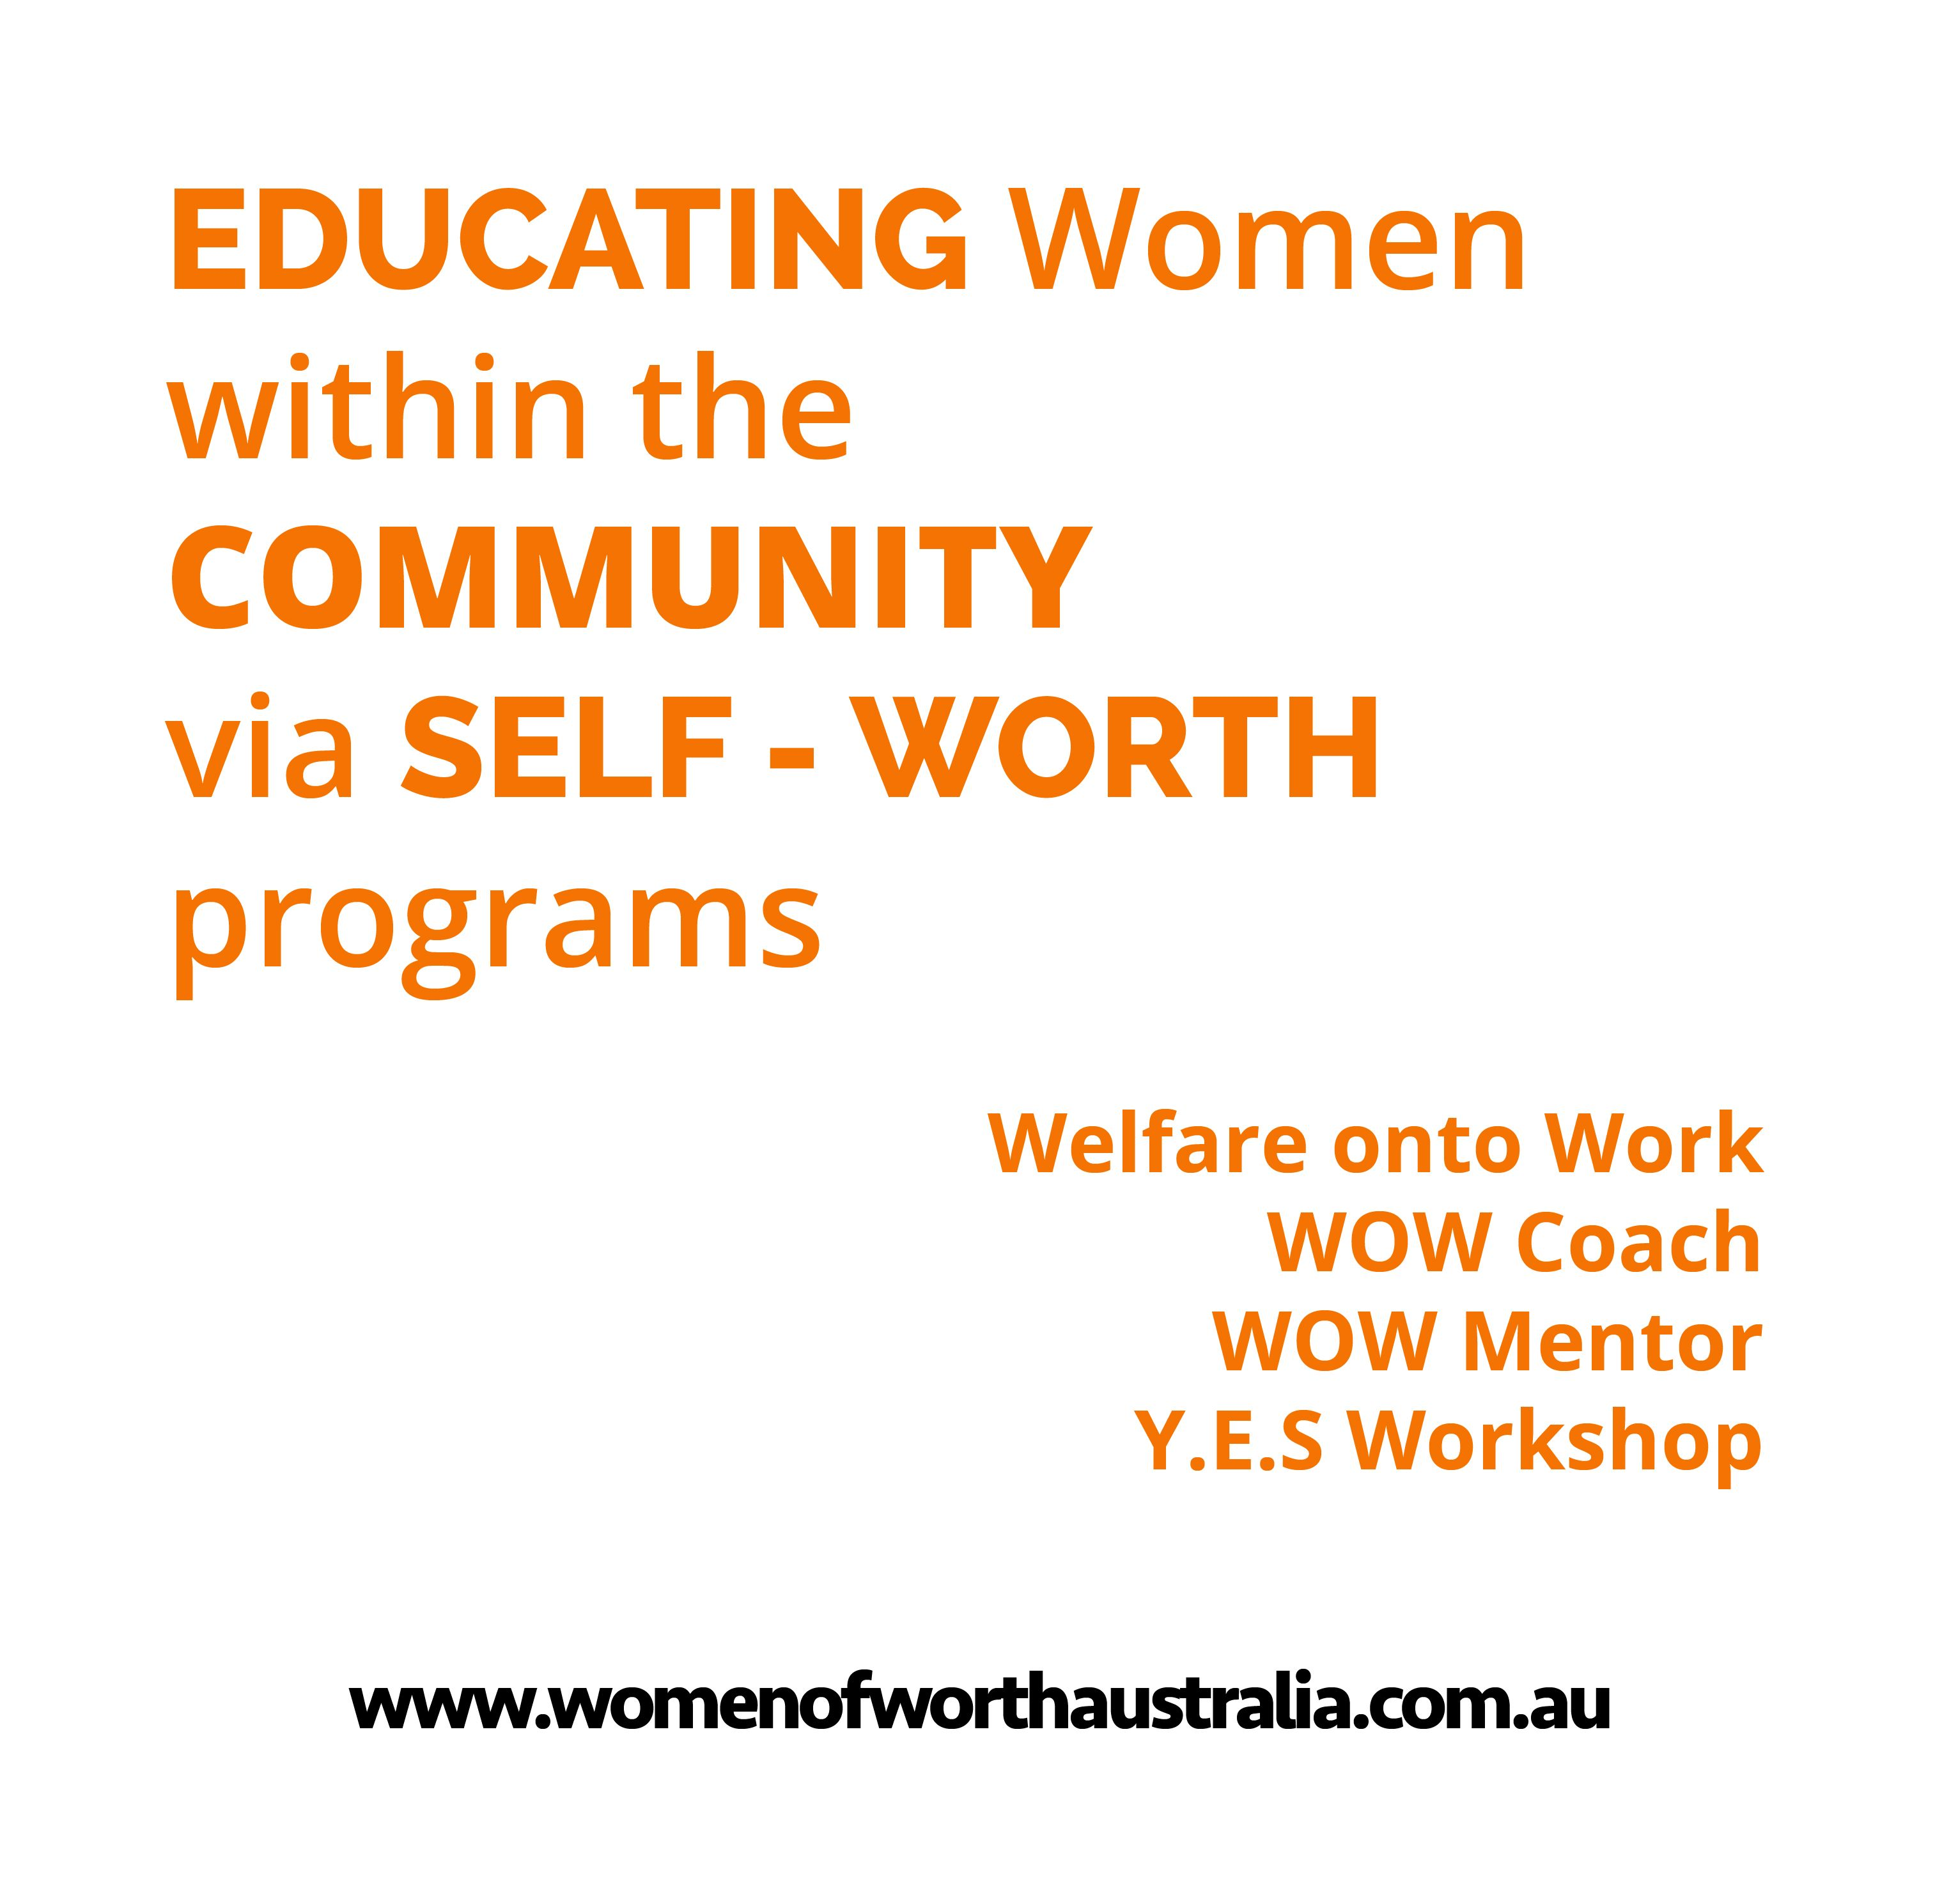 W.O.W Programs provide Women with the education and support via our Self-Worth programs. Find our more at www.womenofworthaustralia.com.au/welfare-onto-work/